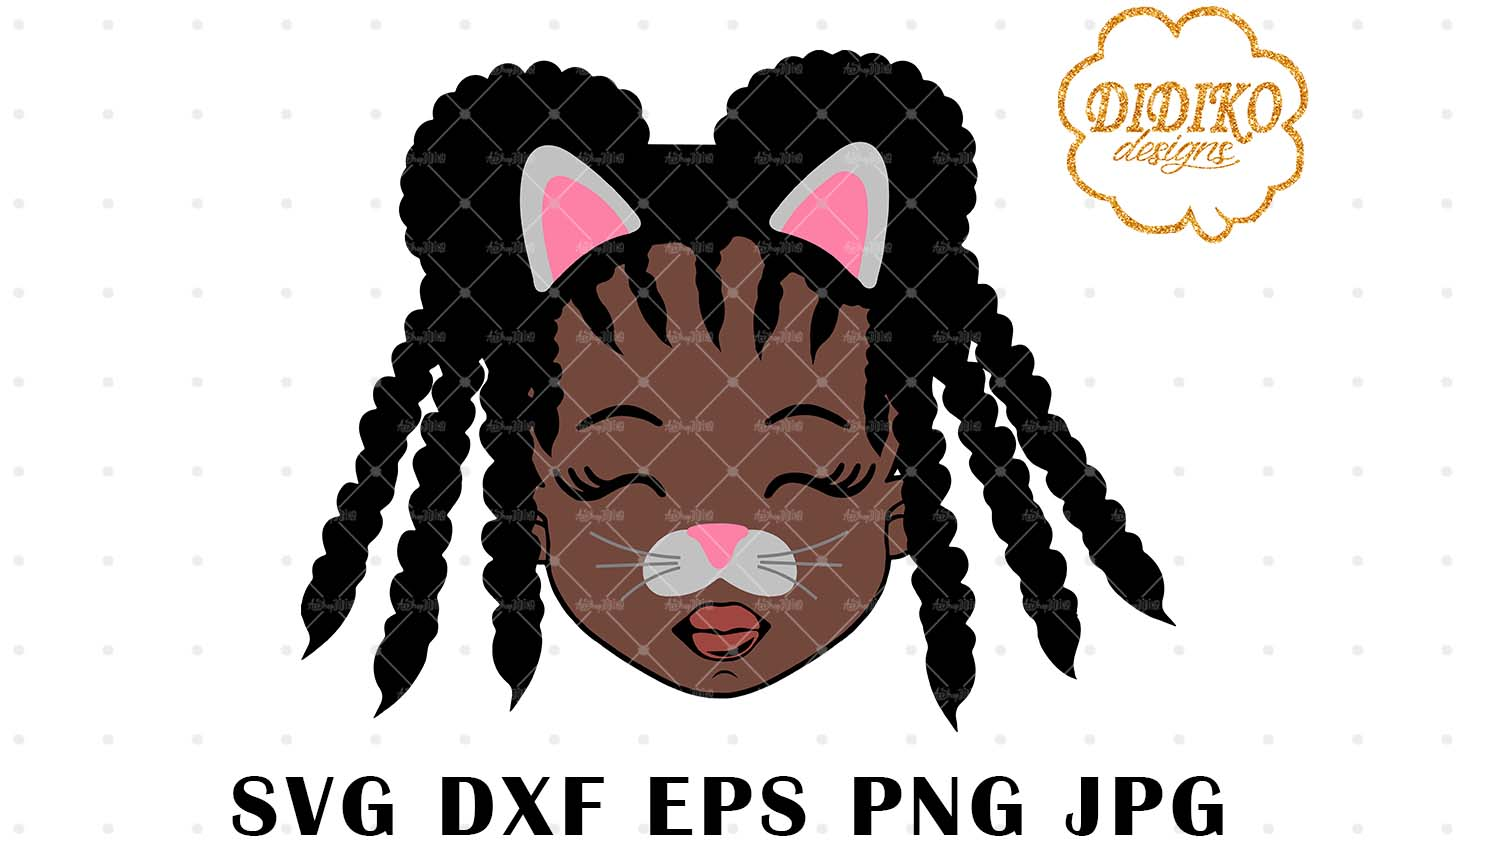 DIDIKO designs Afro Cat Girl Halloween SVG